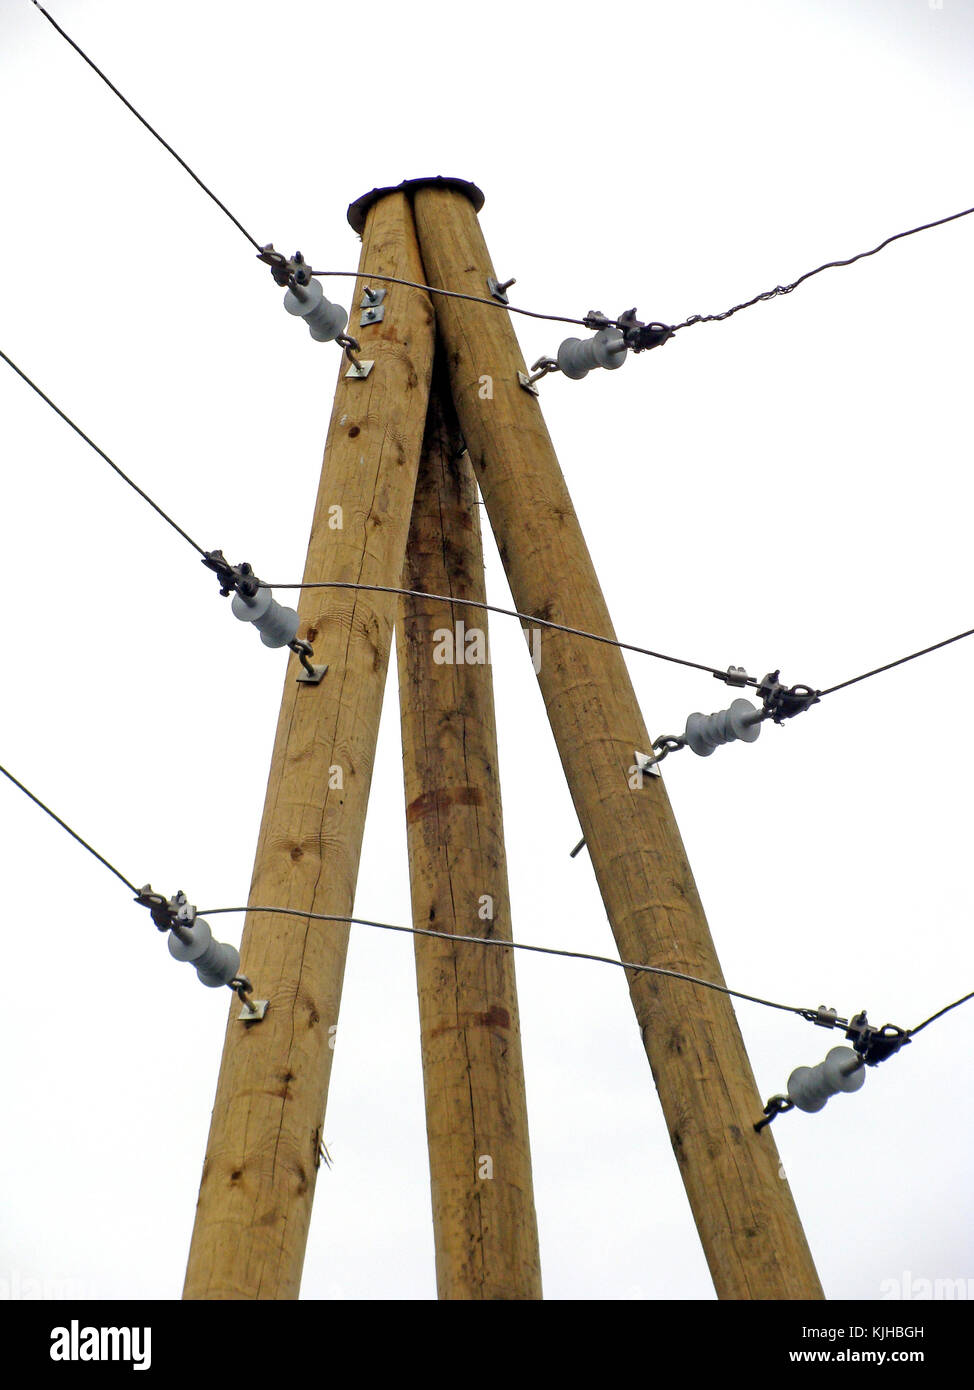 Modern Small Ceramic High Voltage Electric Insulators On Wooden Electrical Wiring Angle Pillar